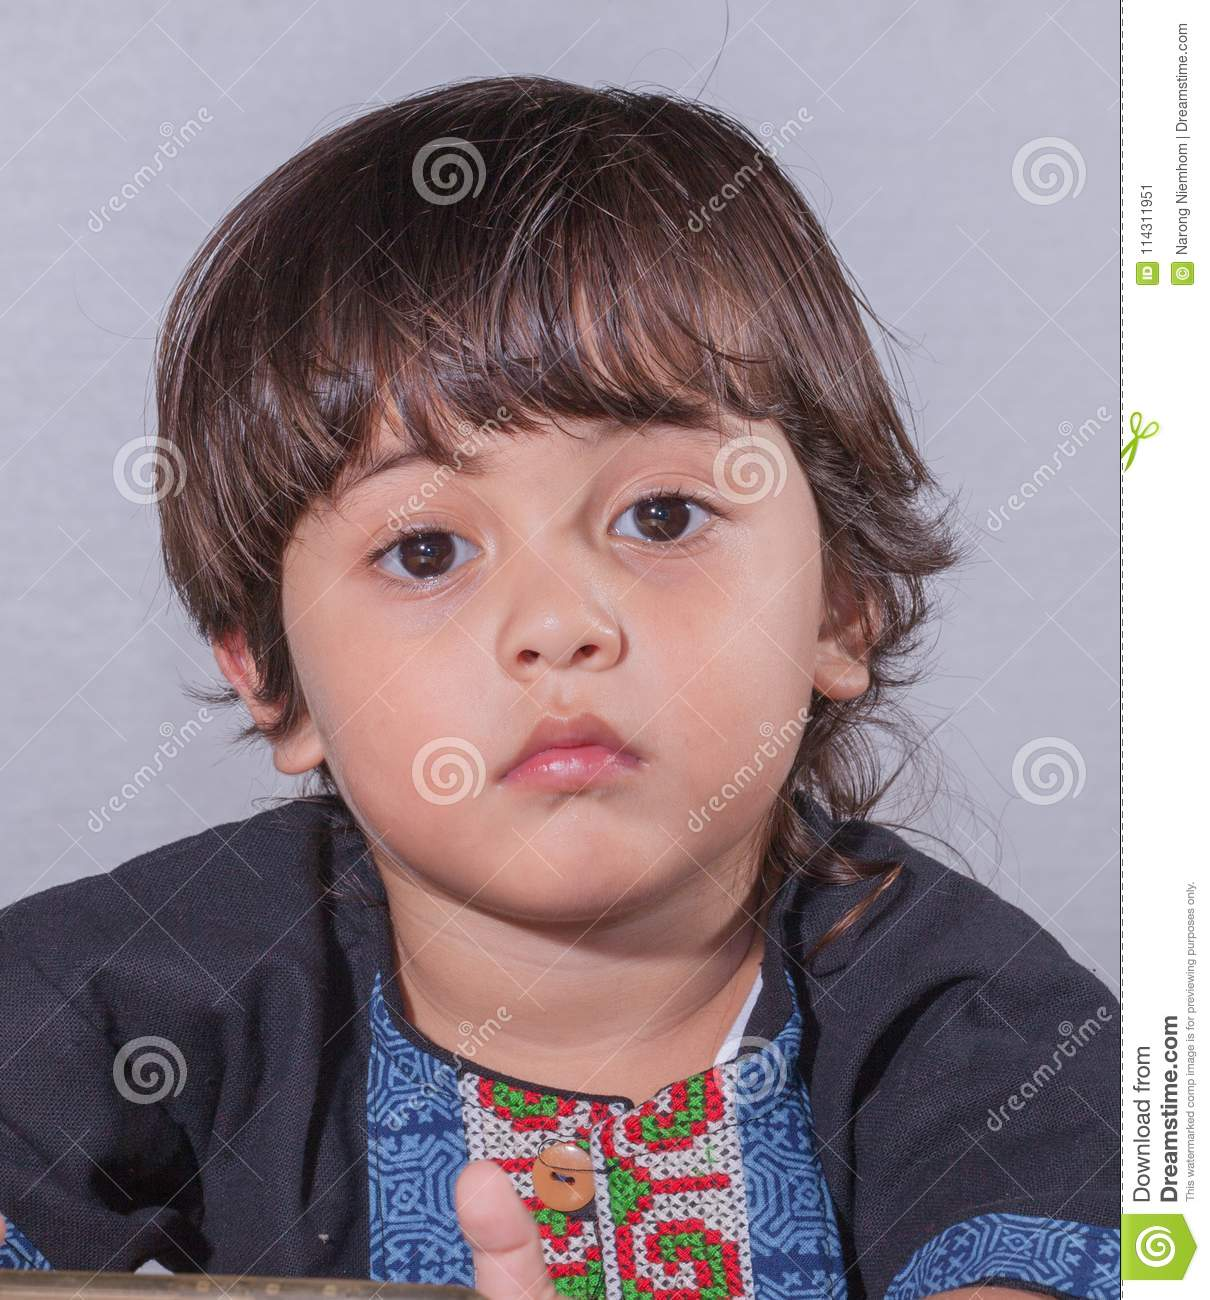 cute baby face with big eyes. stock image - image of cute